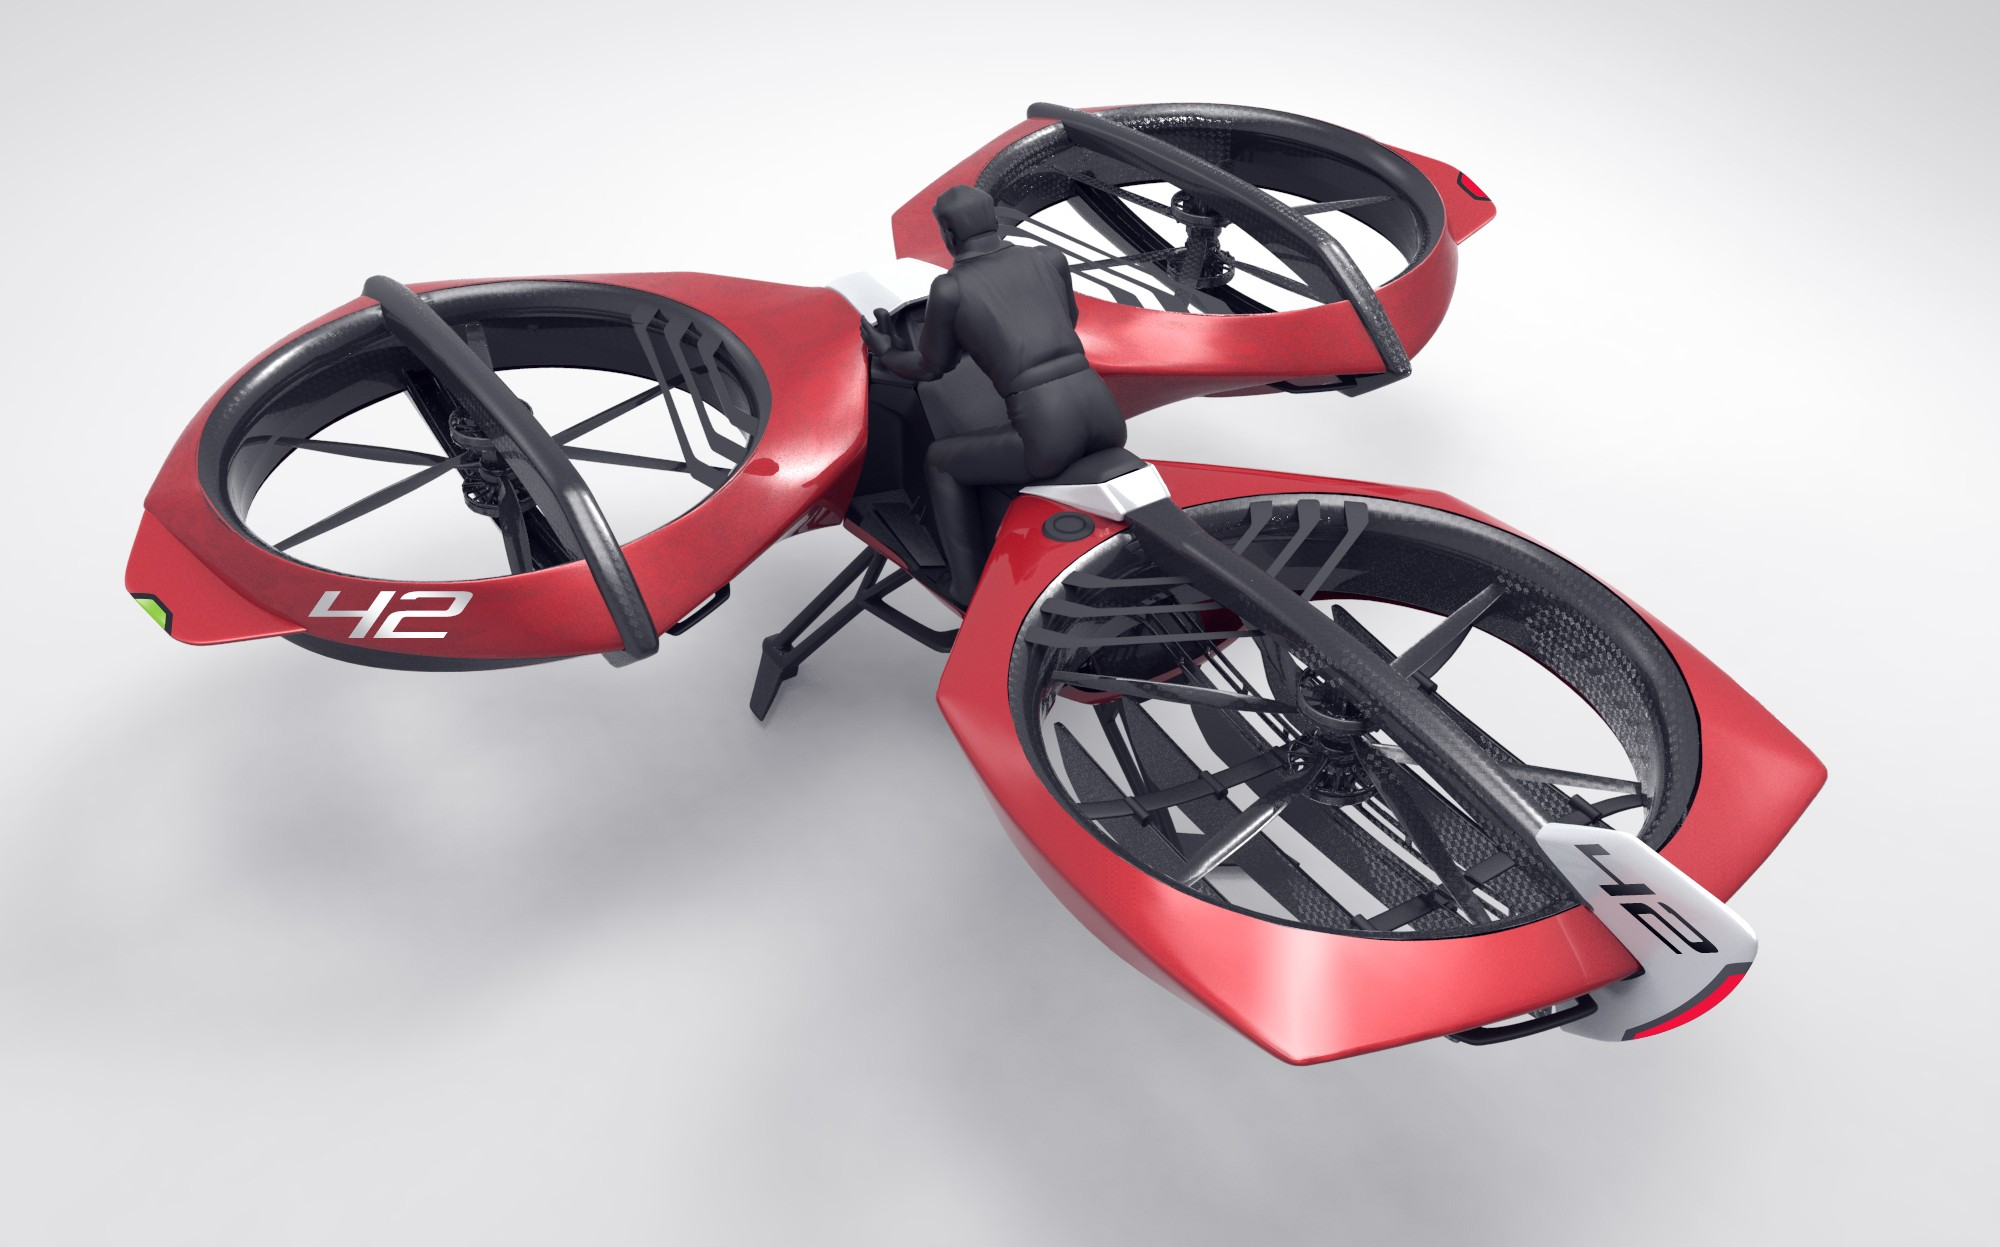 Flike Is A Flying Motorcycle You Can Have For 100k